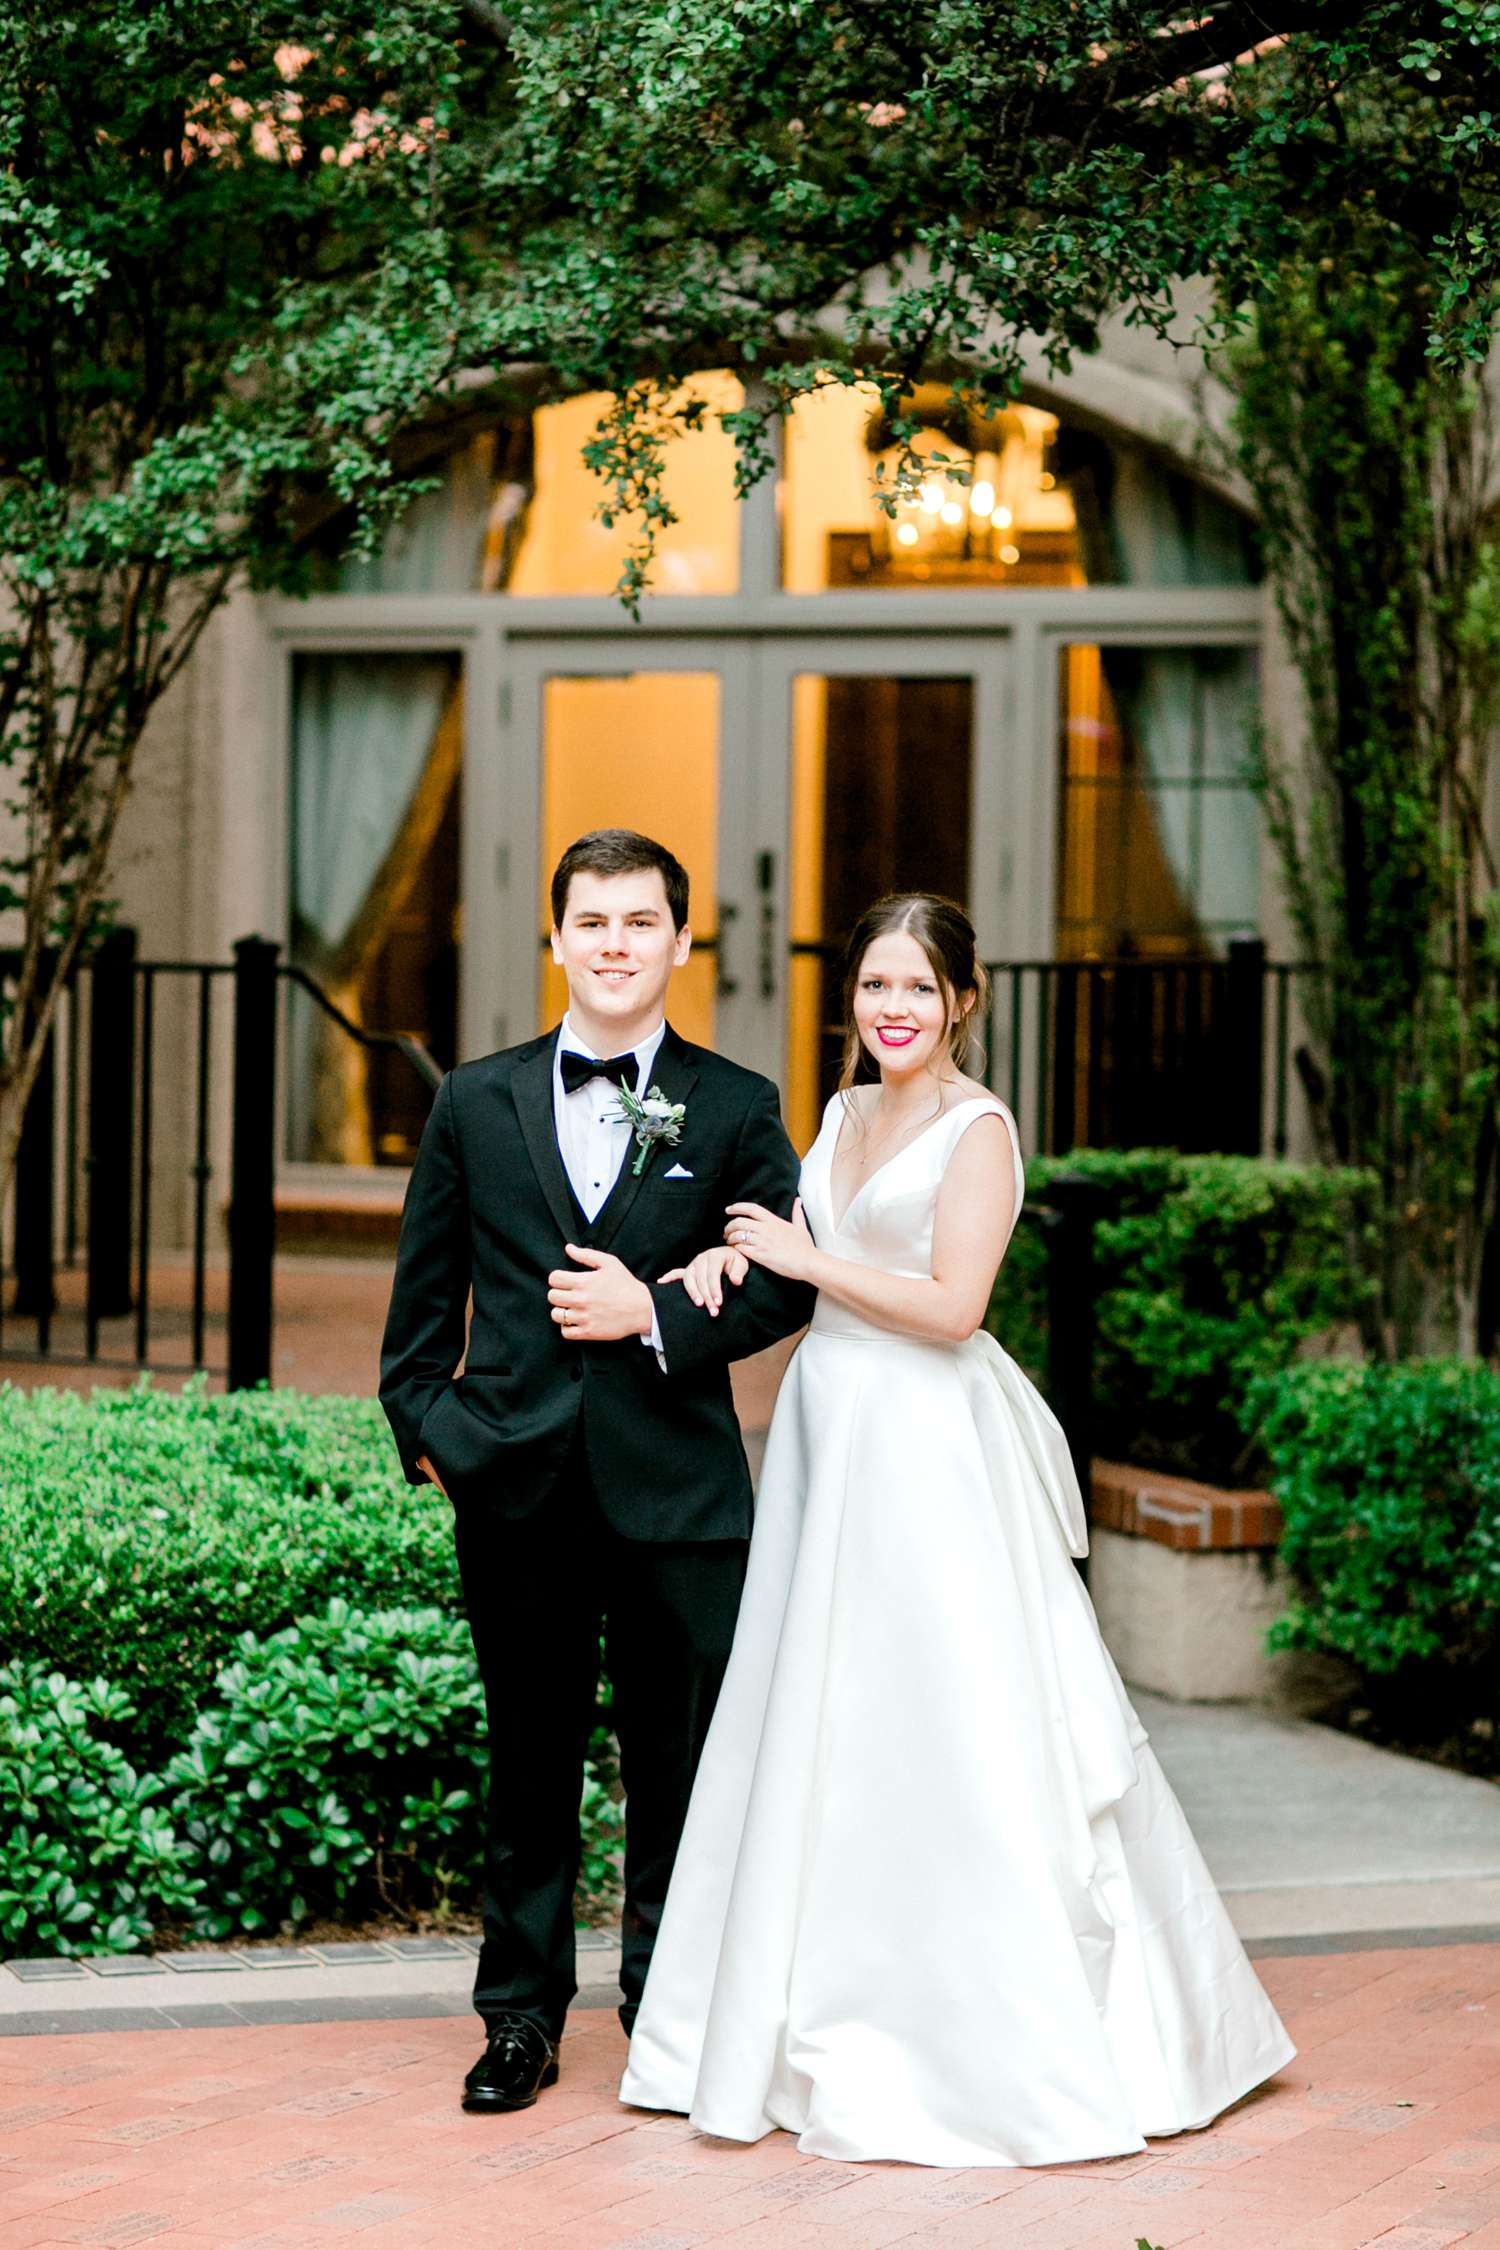 HANNAH+CRAIG+CHILDS+TEXAS+TECH+WEDDING+ALLEEJ+LUBBOCK+PHOTOGRAPHER_0139.jpg